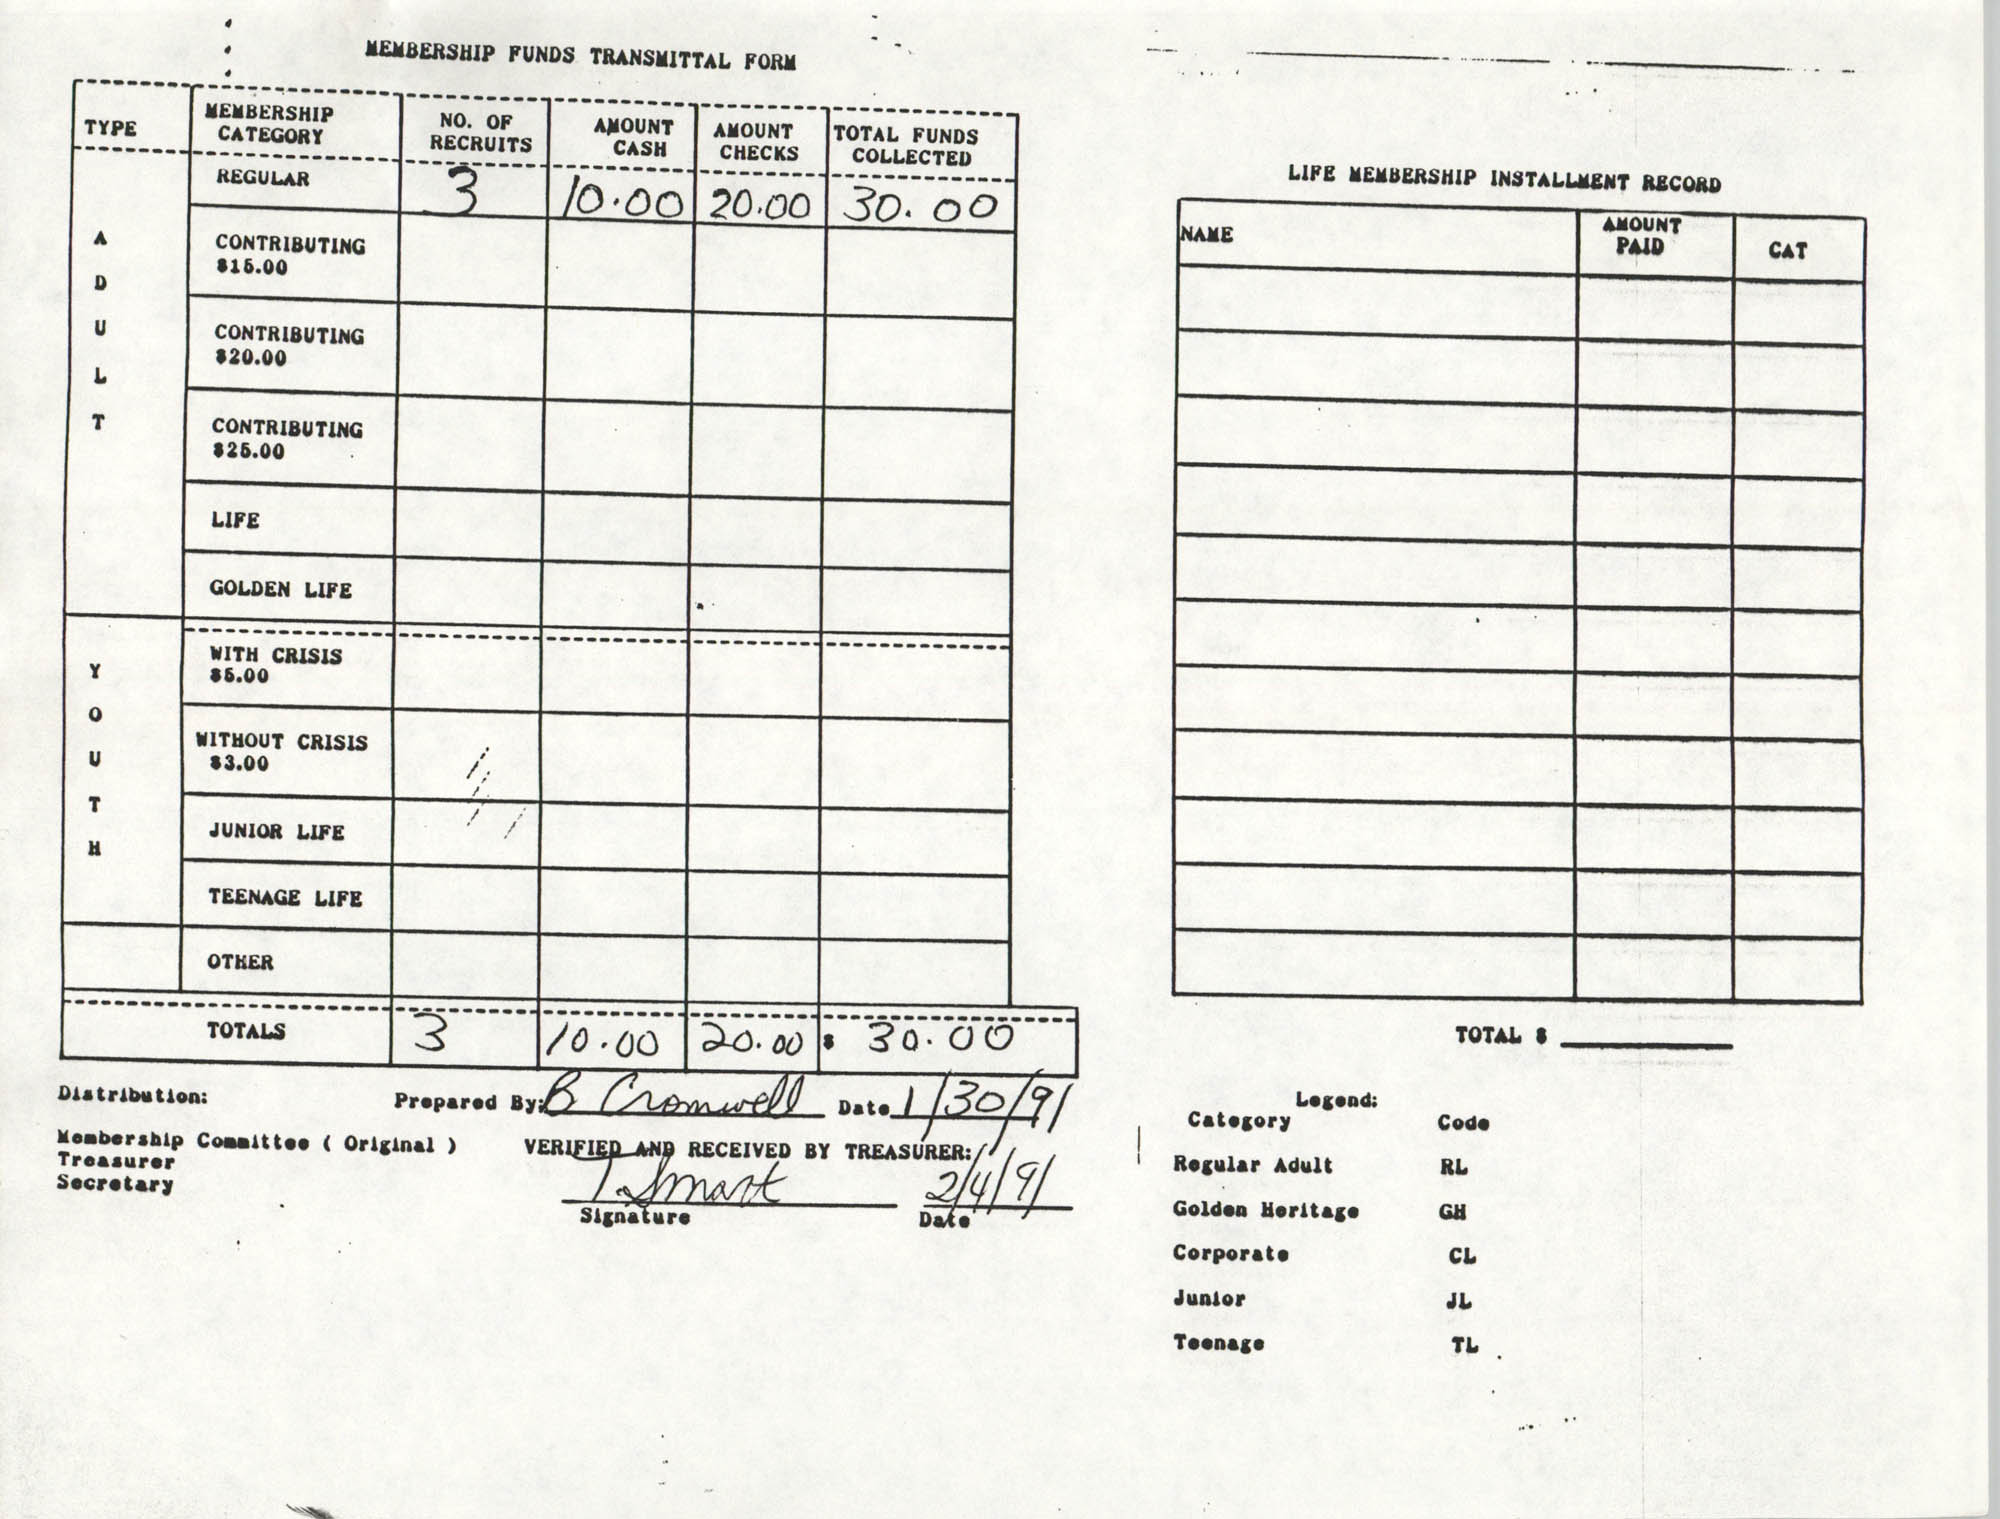 Charleston Branch of the NAACP Funds Transmittal Forms, January 1991, Page 5